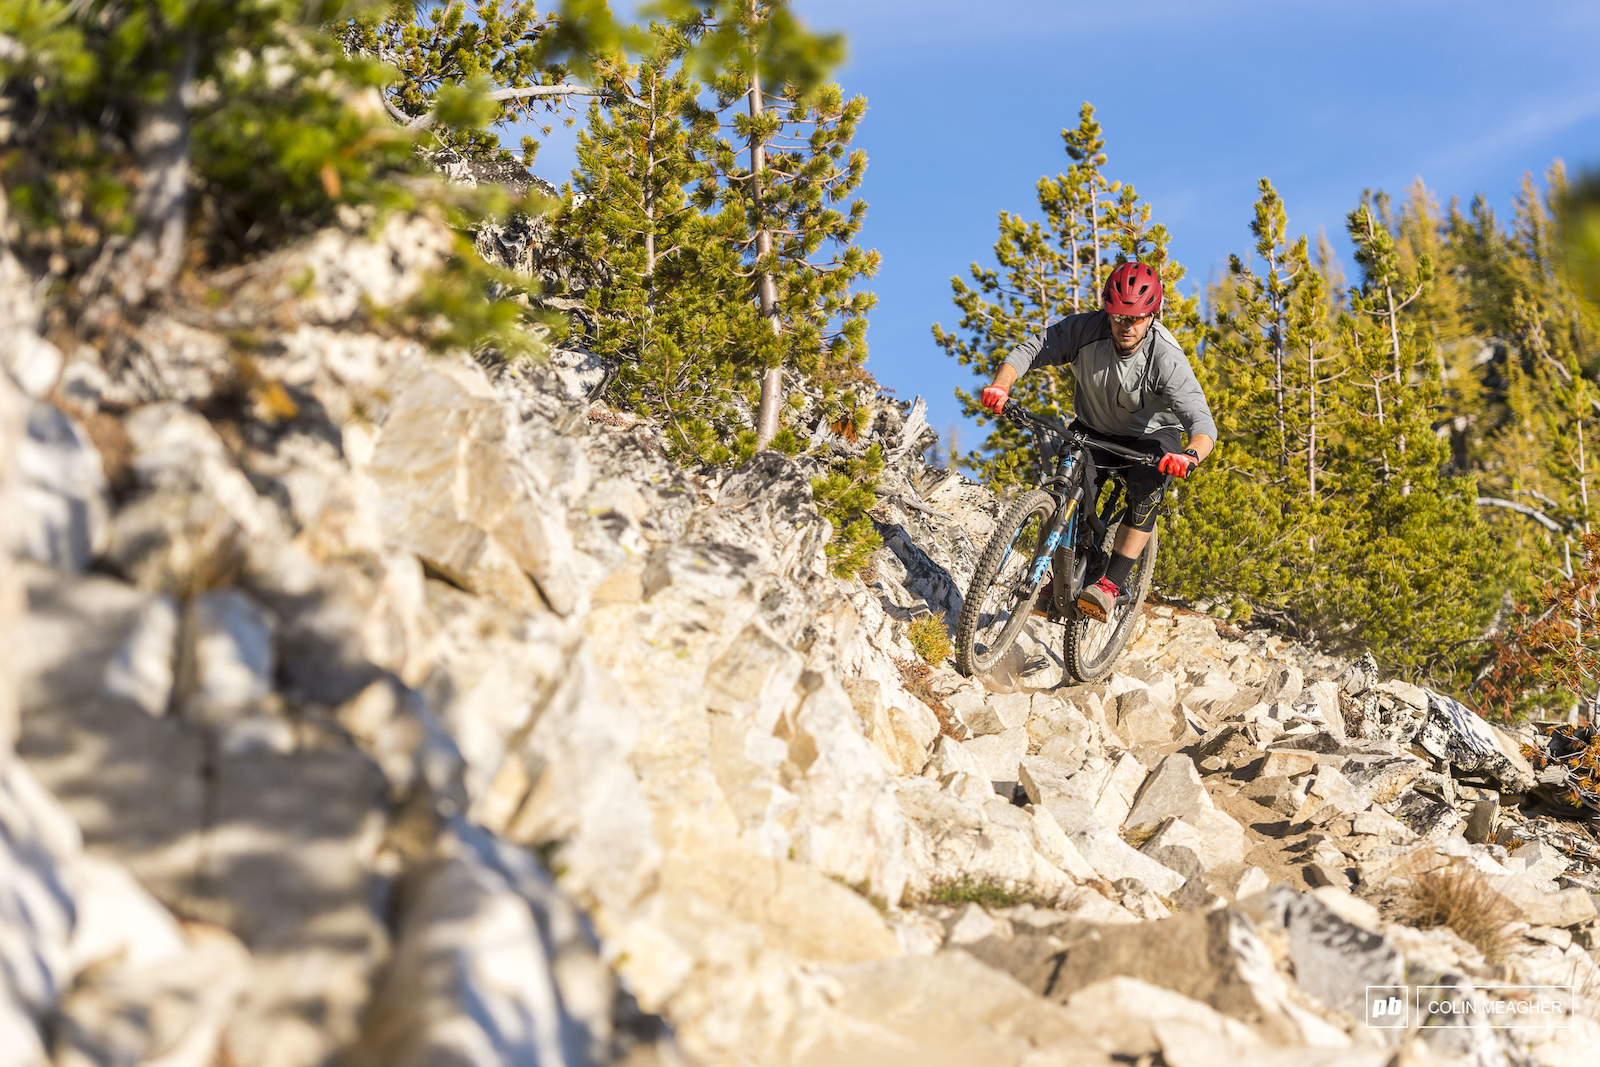 Riding the trails that surround Lakecreek Drainage in the Entiat Mountains near Lake Chelan WA. imagery is model released